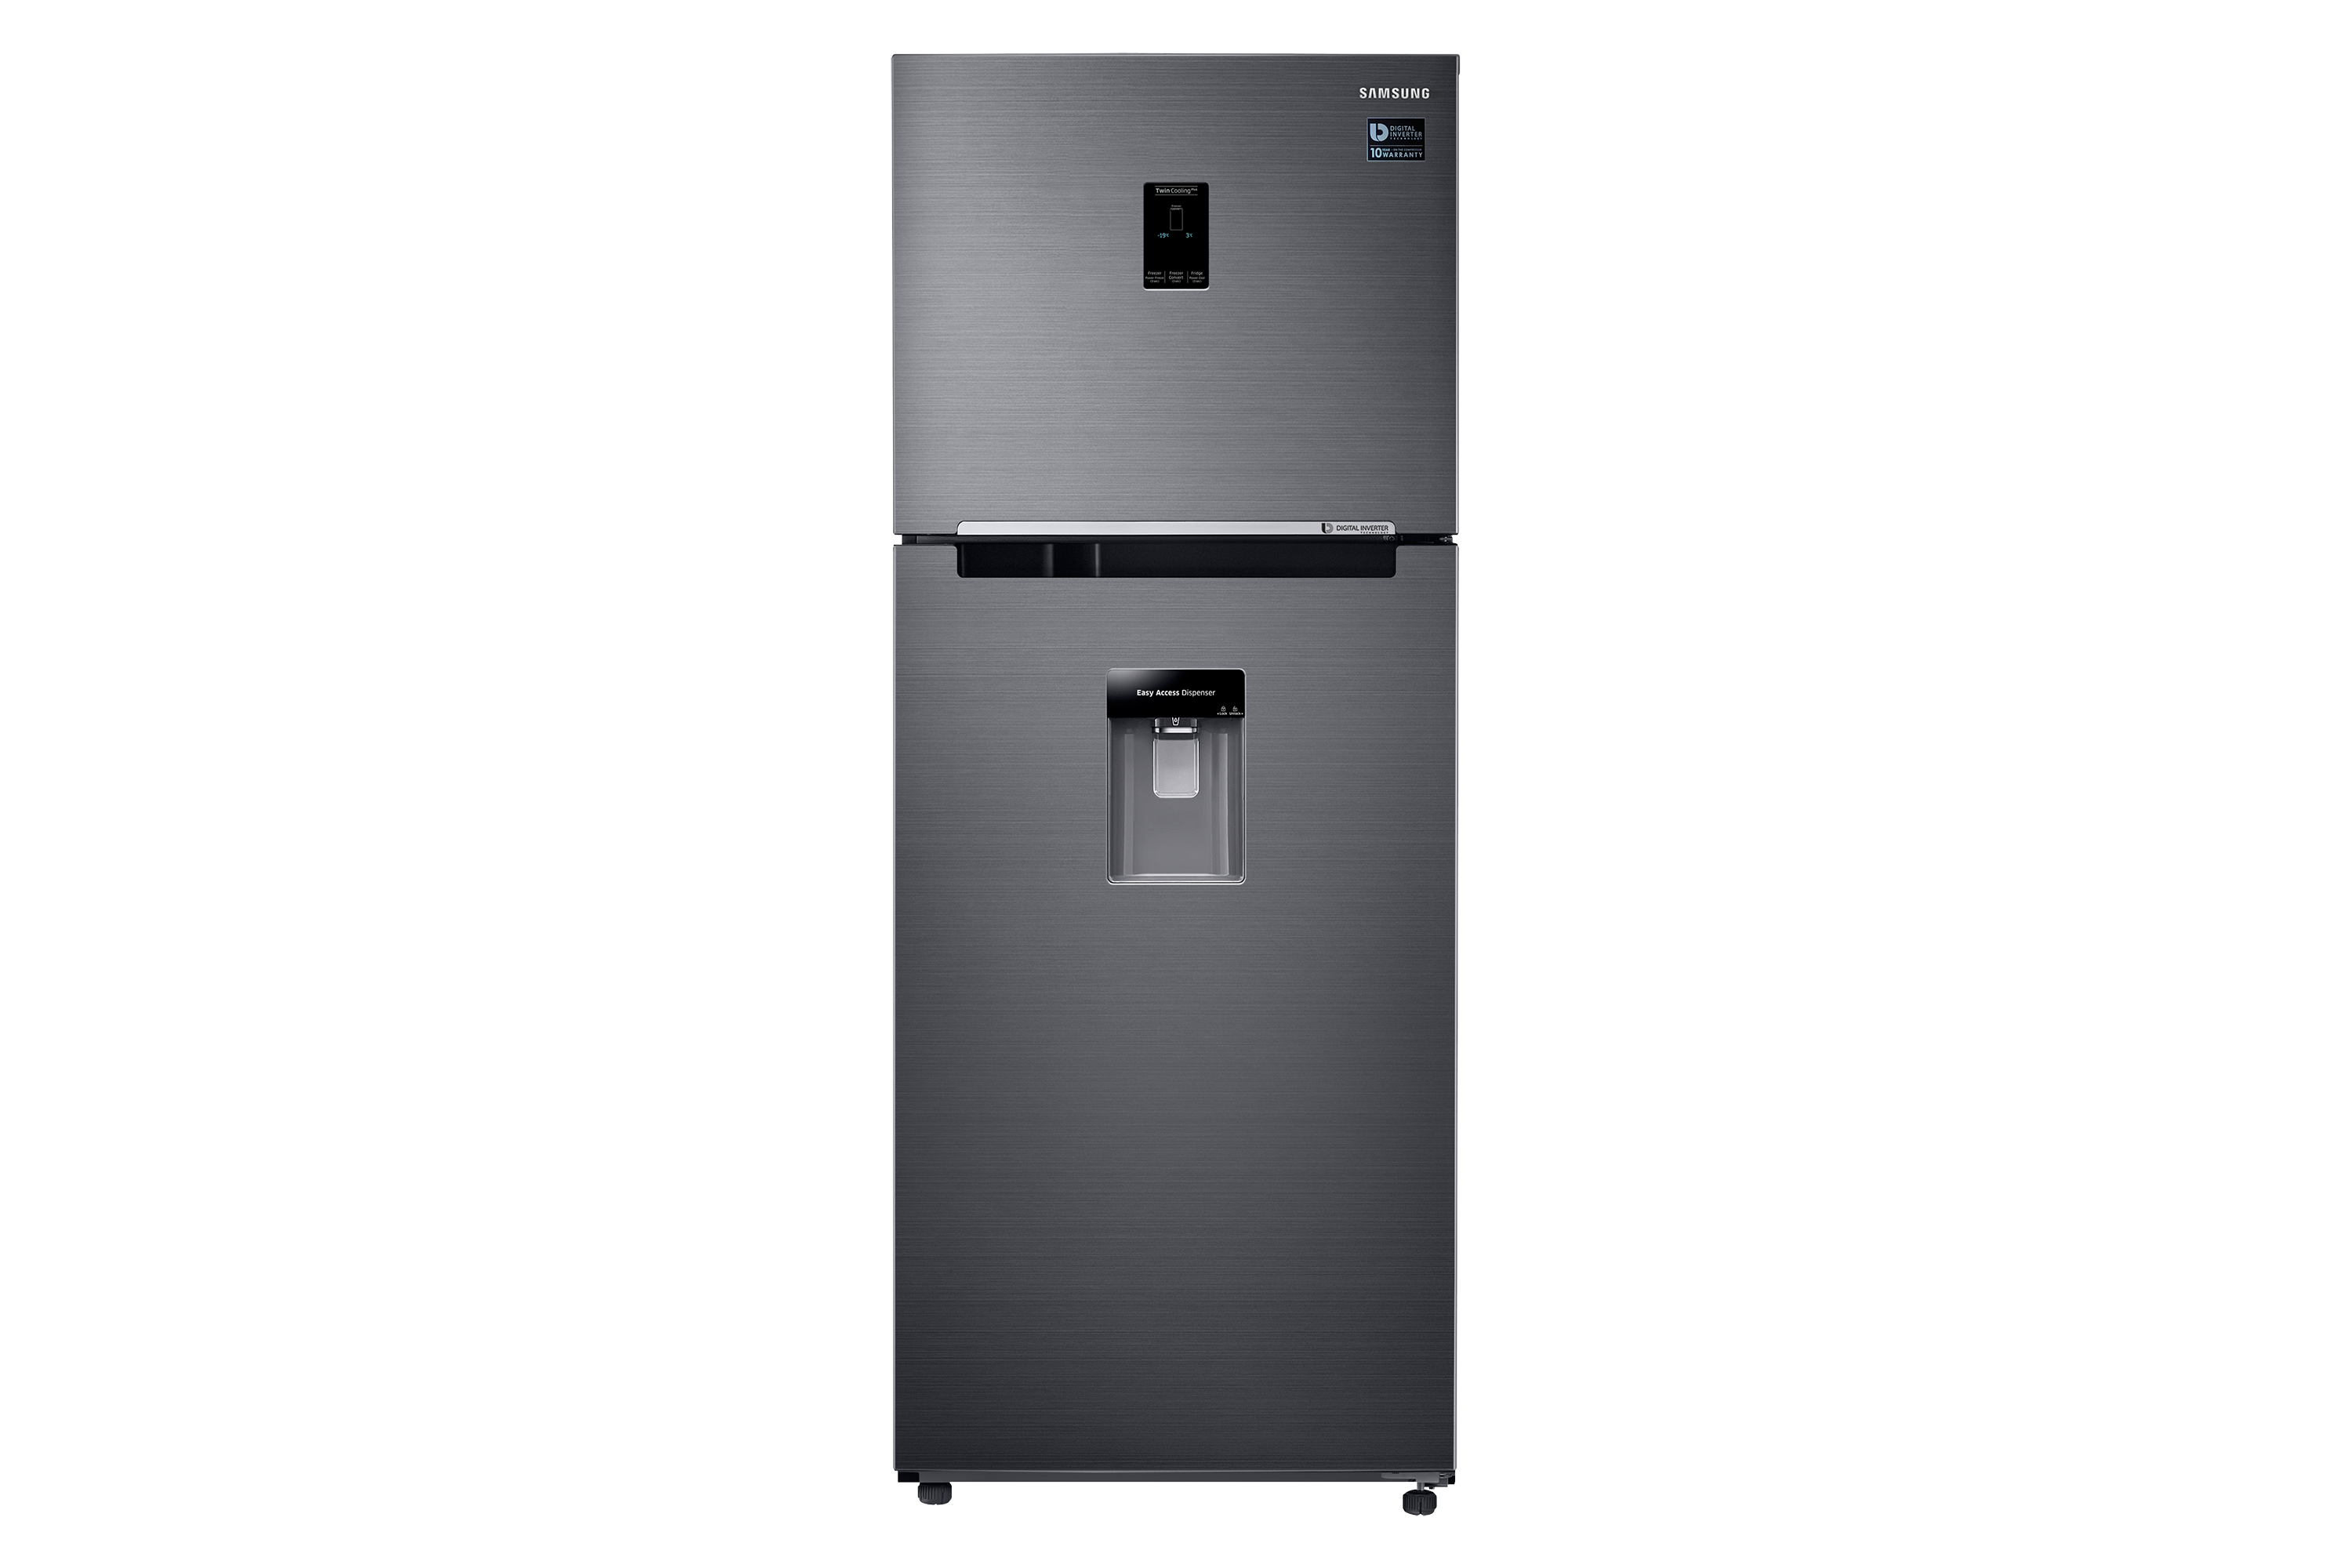 Top Mount de 14 cu ft con Twin Cooling Plus